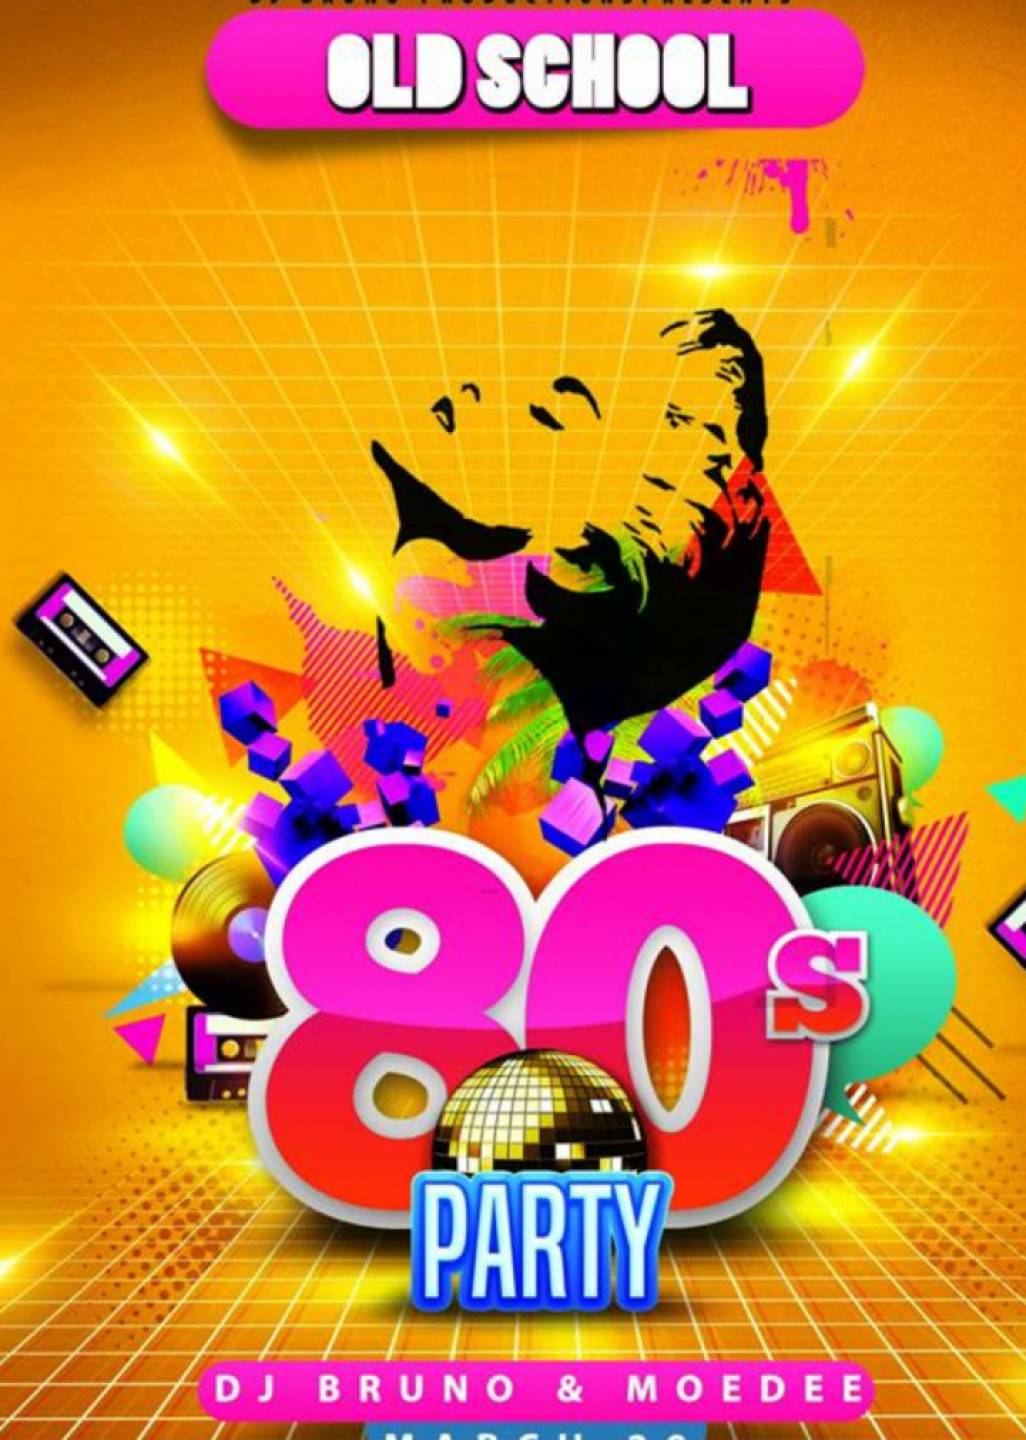 OLD SCHOOL 80'S PARTY